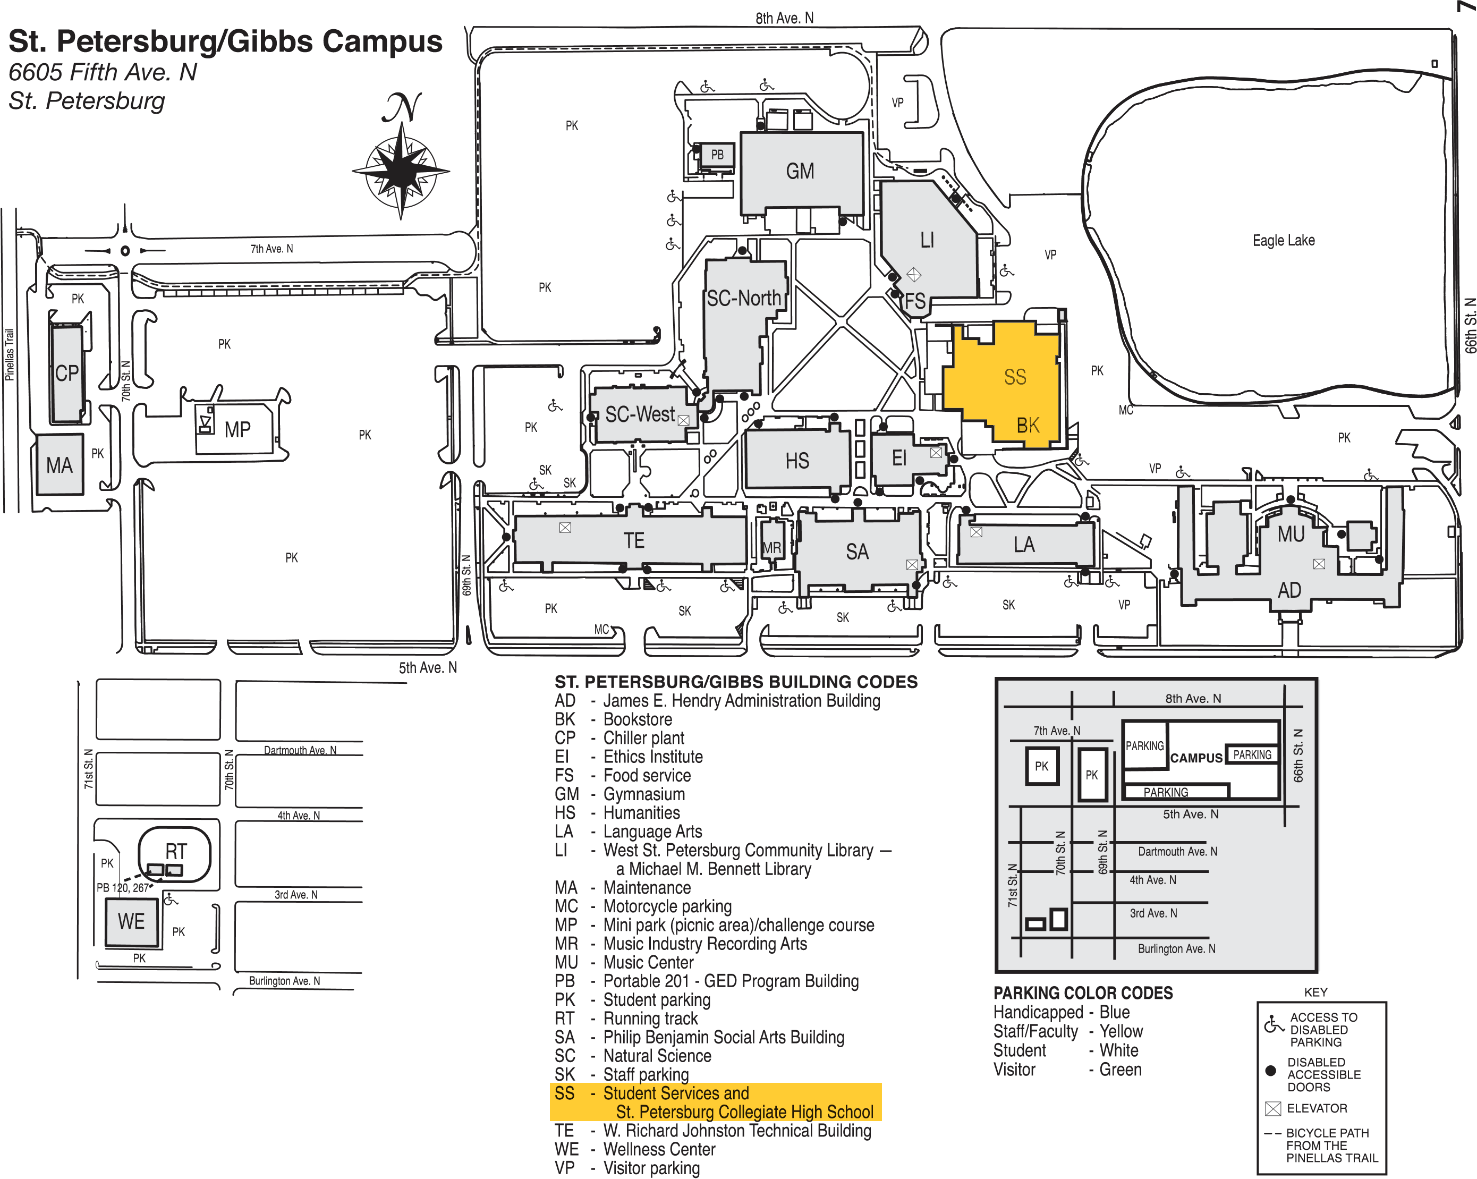 Spc Clearwater Campus Map Time Zones Map: St Pete Gibbs Campus Map